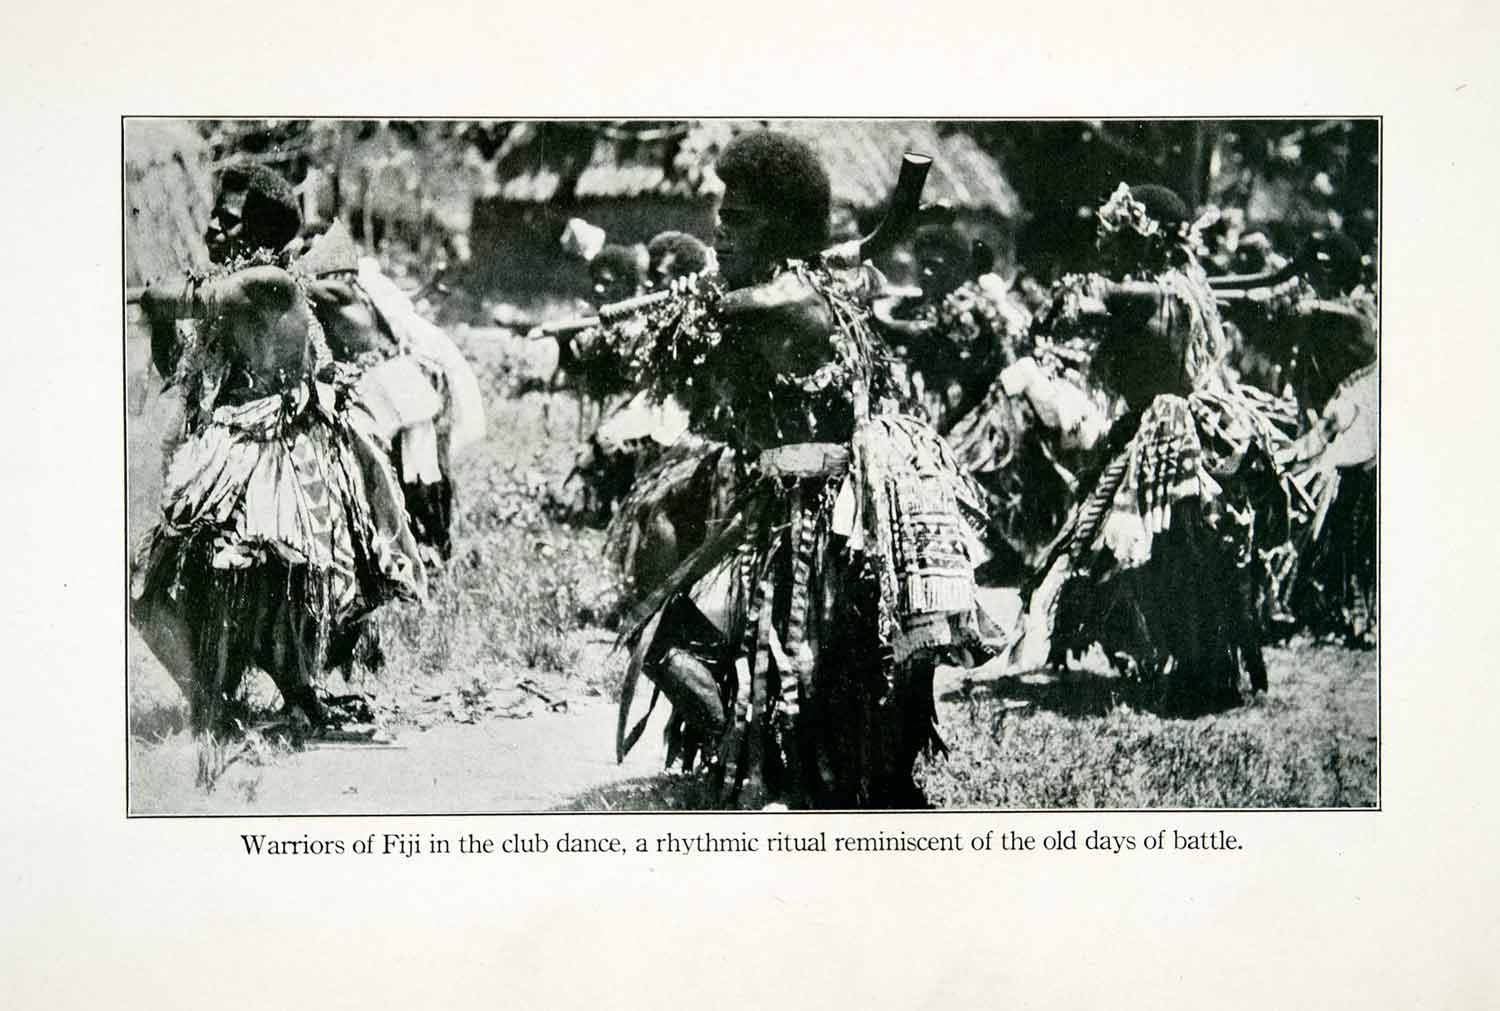 1923 Print Fiji Warriors Traditional Club Dance Meke I Wau Ritual Island XGAB4